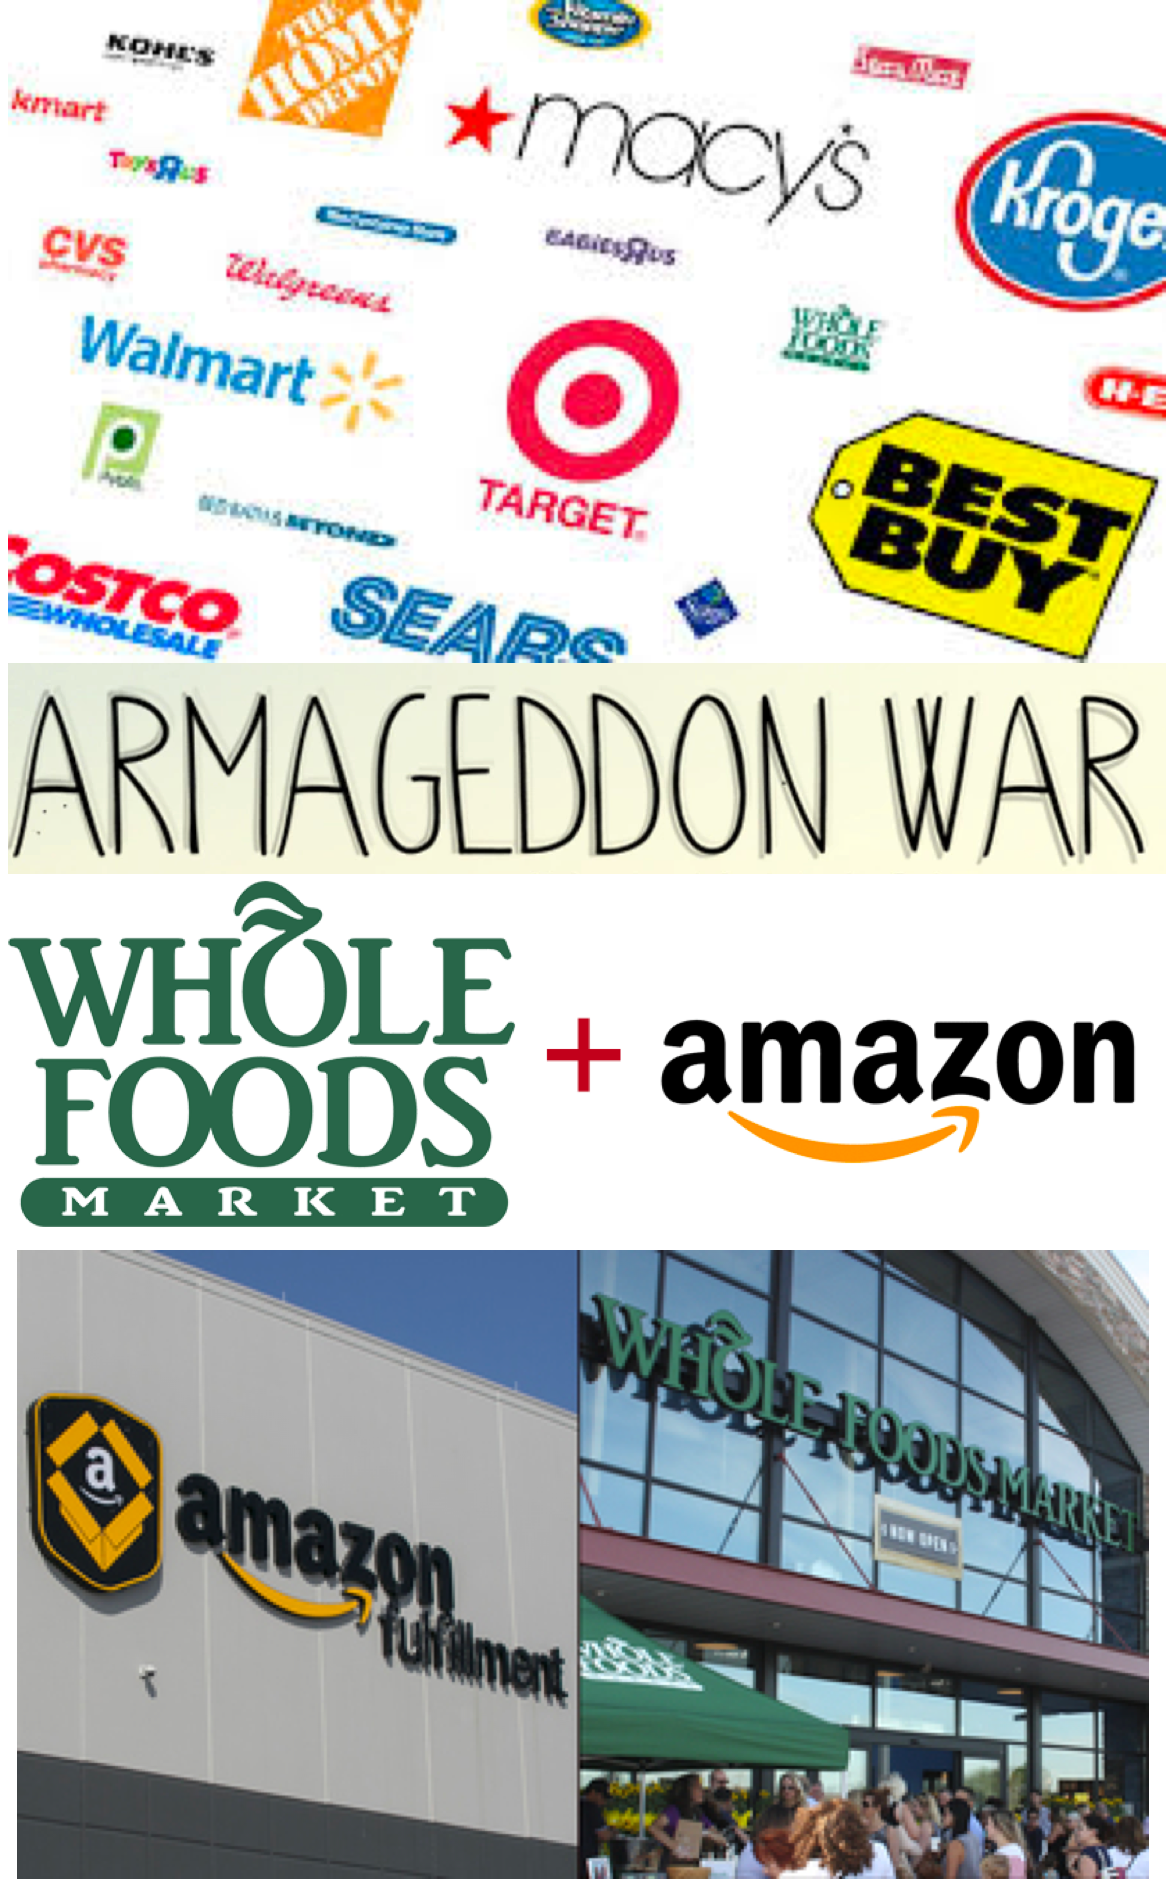 Retail Armageddon War